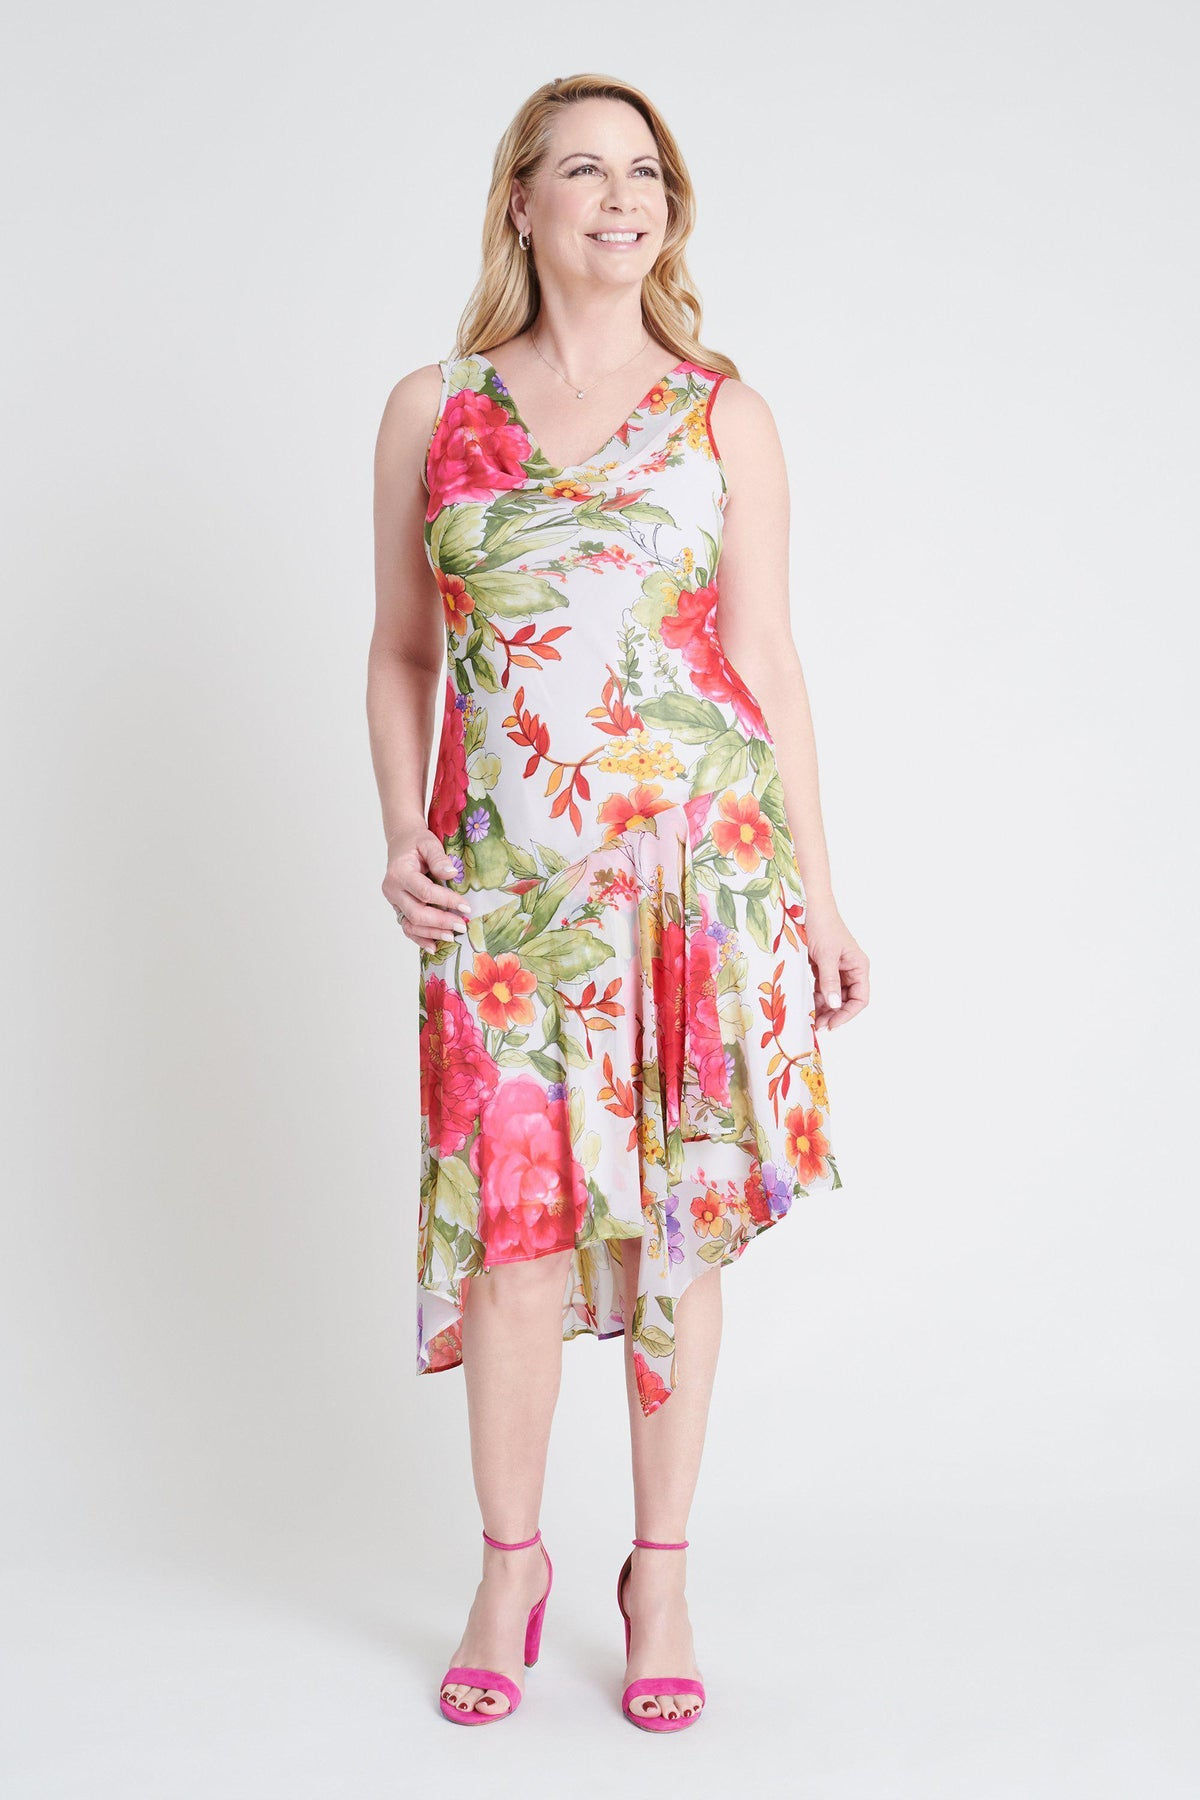 Woman posing wearing Champagne/Pink Willa Pink Floral Print Asymmetrical Dress from Connected Apparel